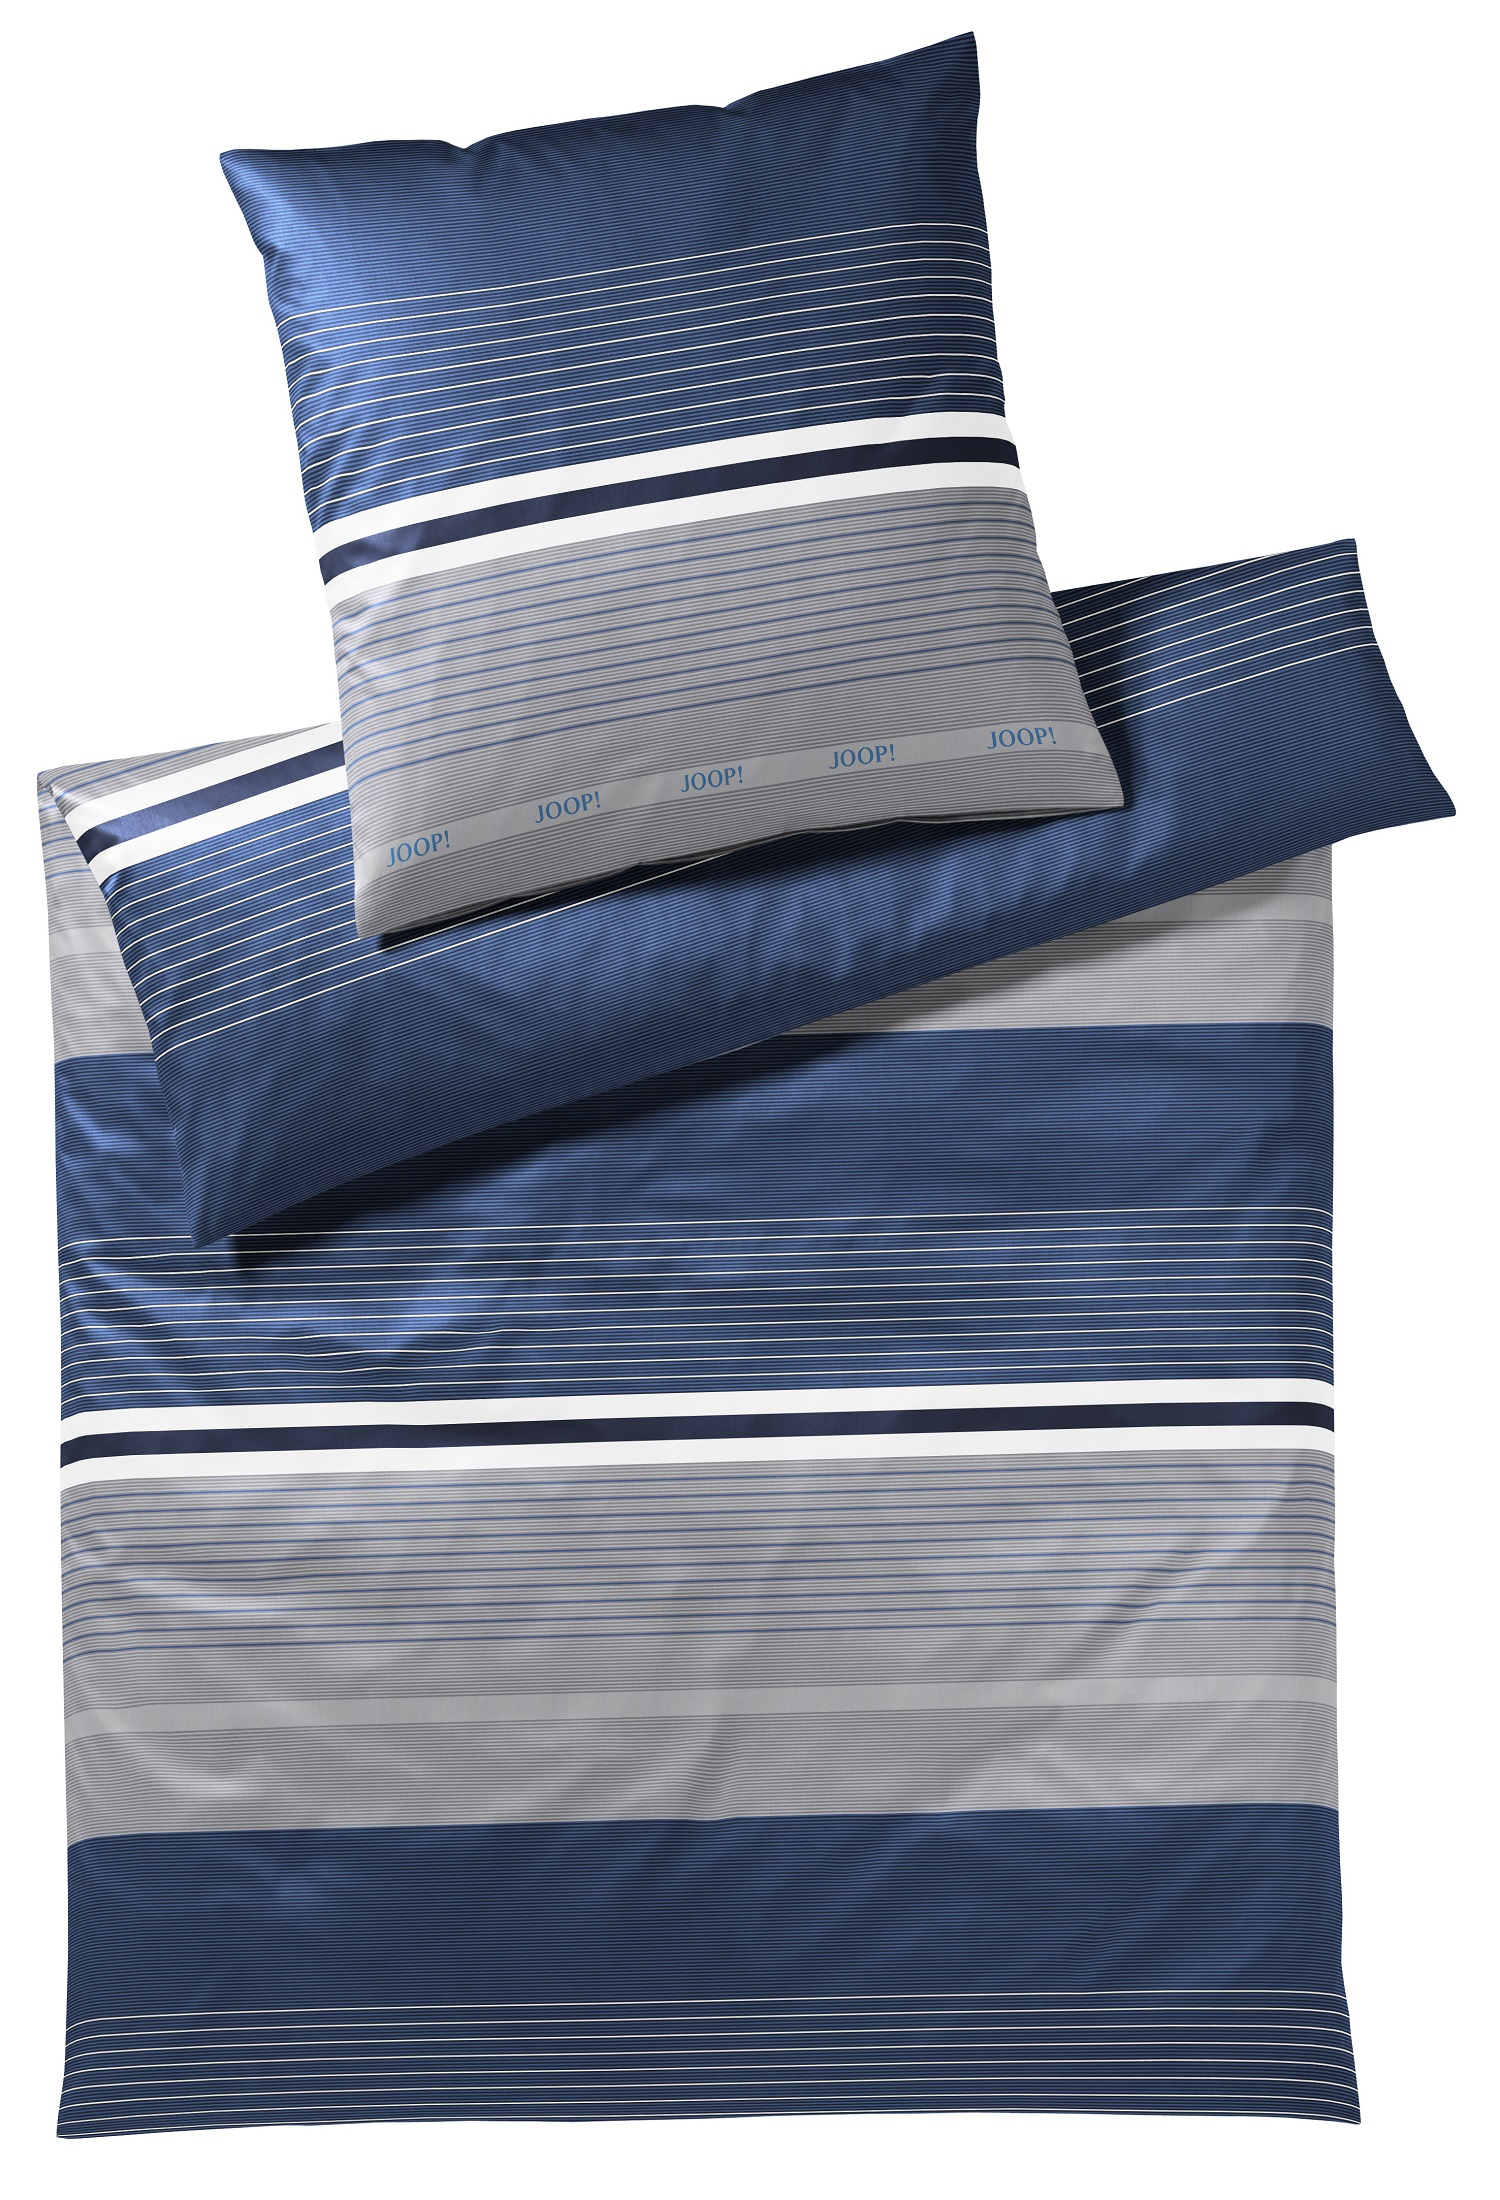 JOOP! Bettwäsche Fit 4091-02 Ocean 135x200 cm Kollektion 2020